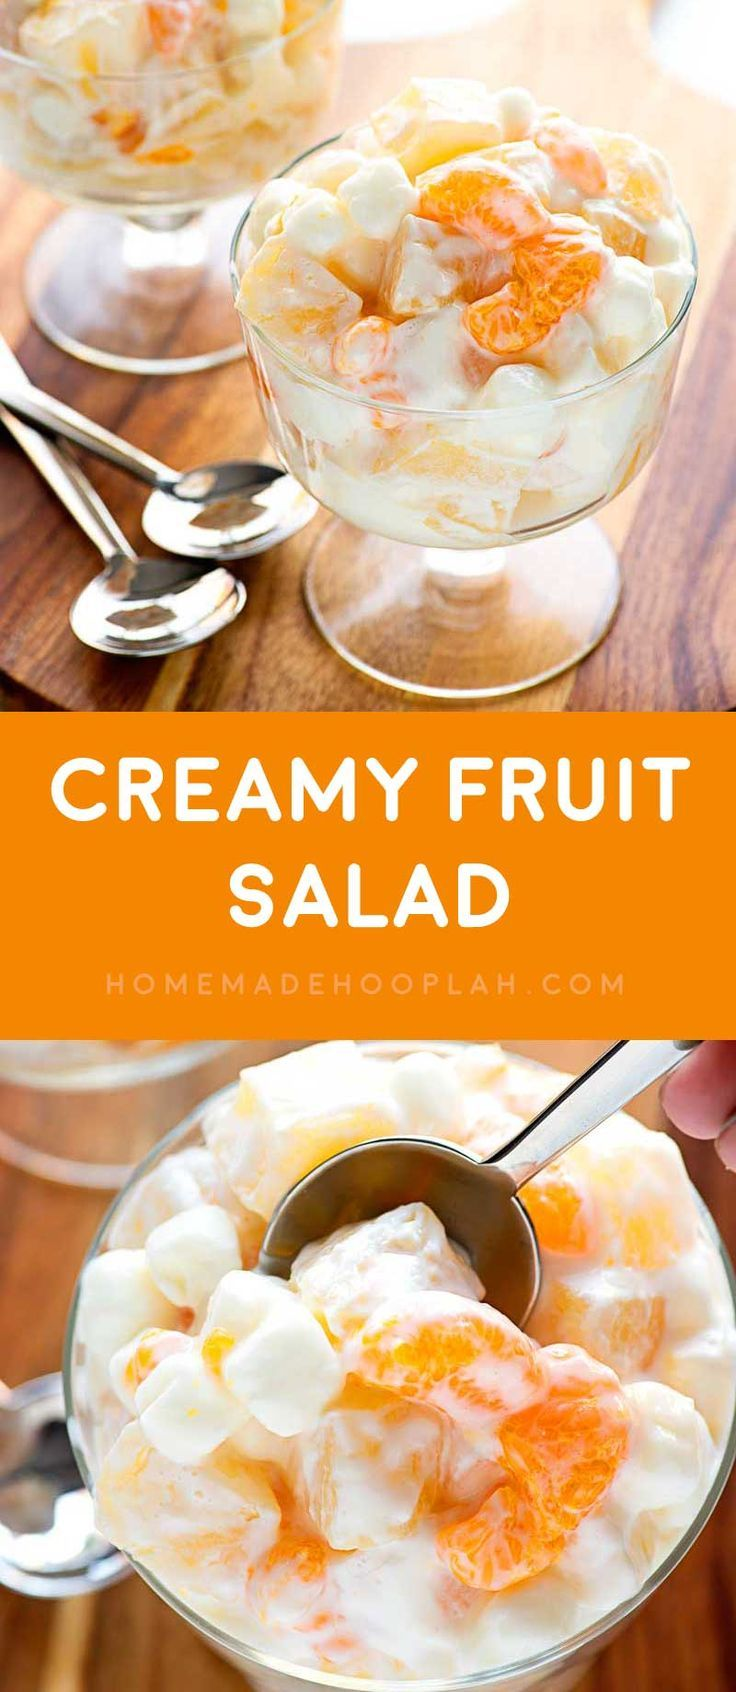 Creamy Fruit Salad! A summer-loving fruit salad with mandarin oranges, pineapple, and pears mixed with mini marshmallows and vanilla greek yogurt. | HomemadeHooplah.com